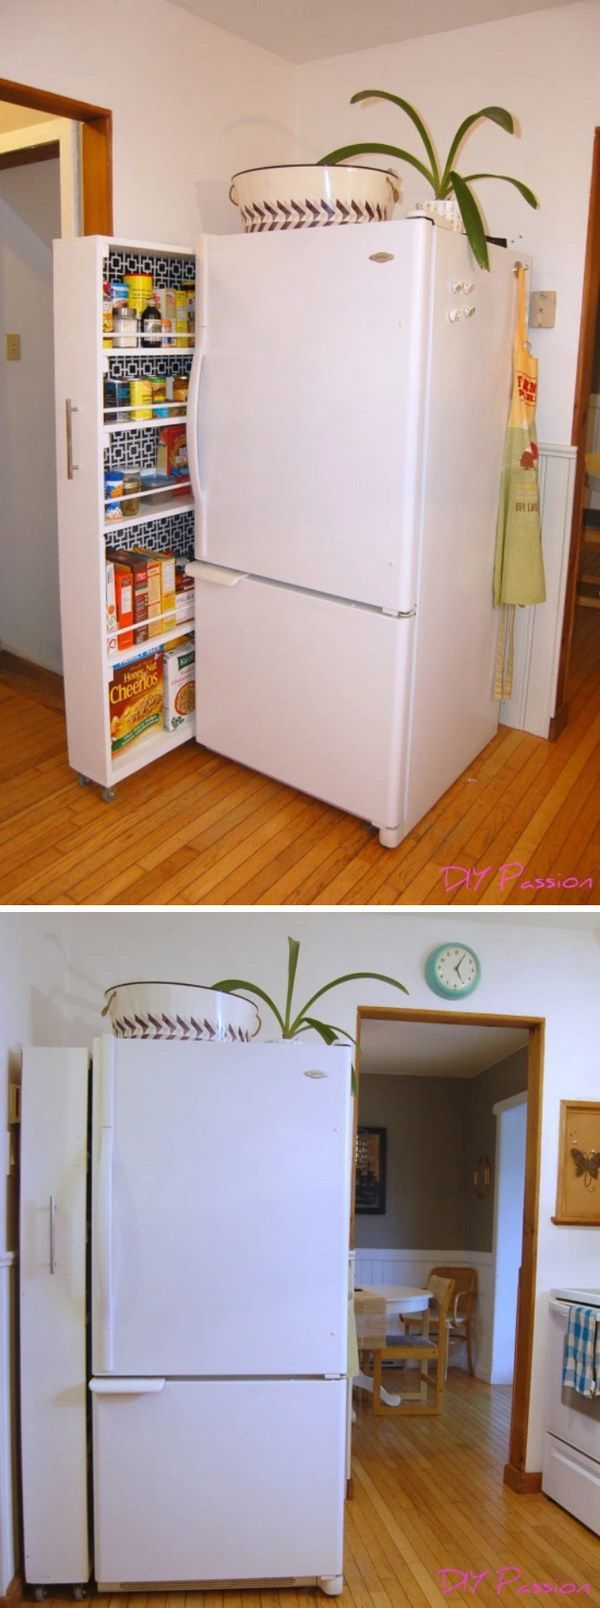 1000 ideas about small space storage on pinterest small for Pantry ideas for small spaces